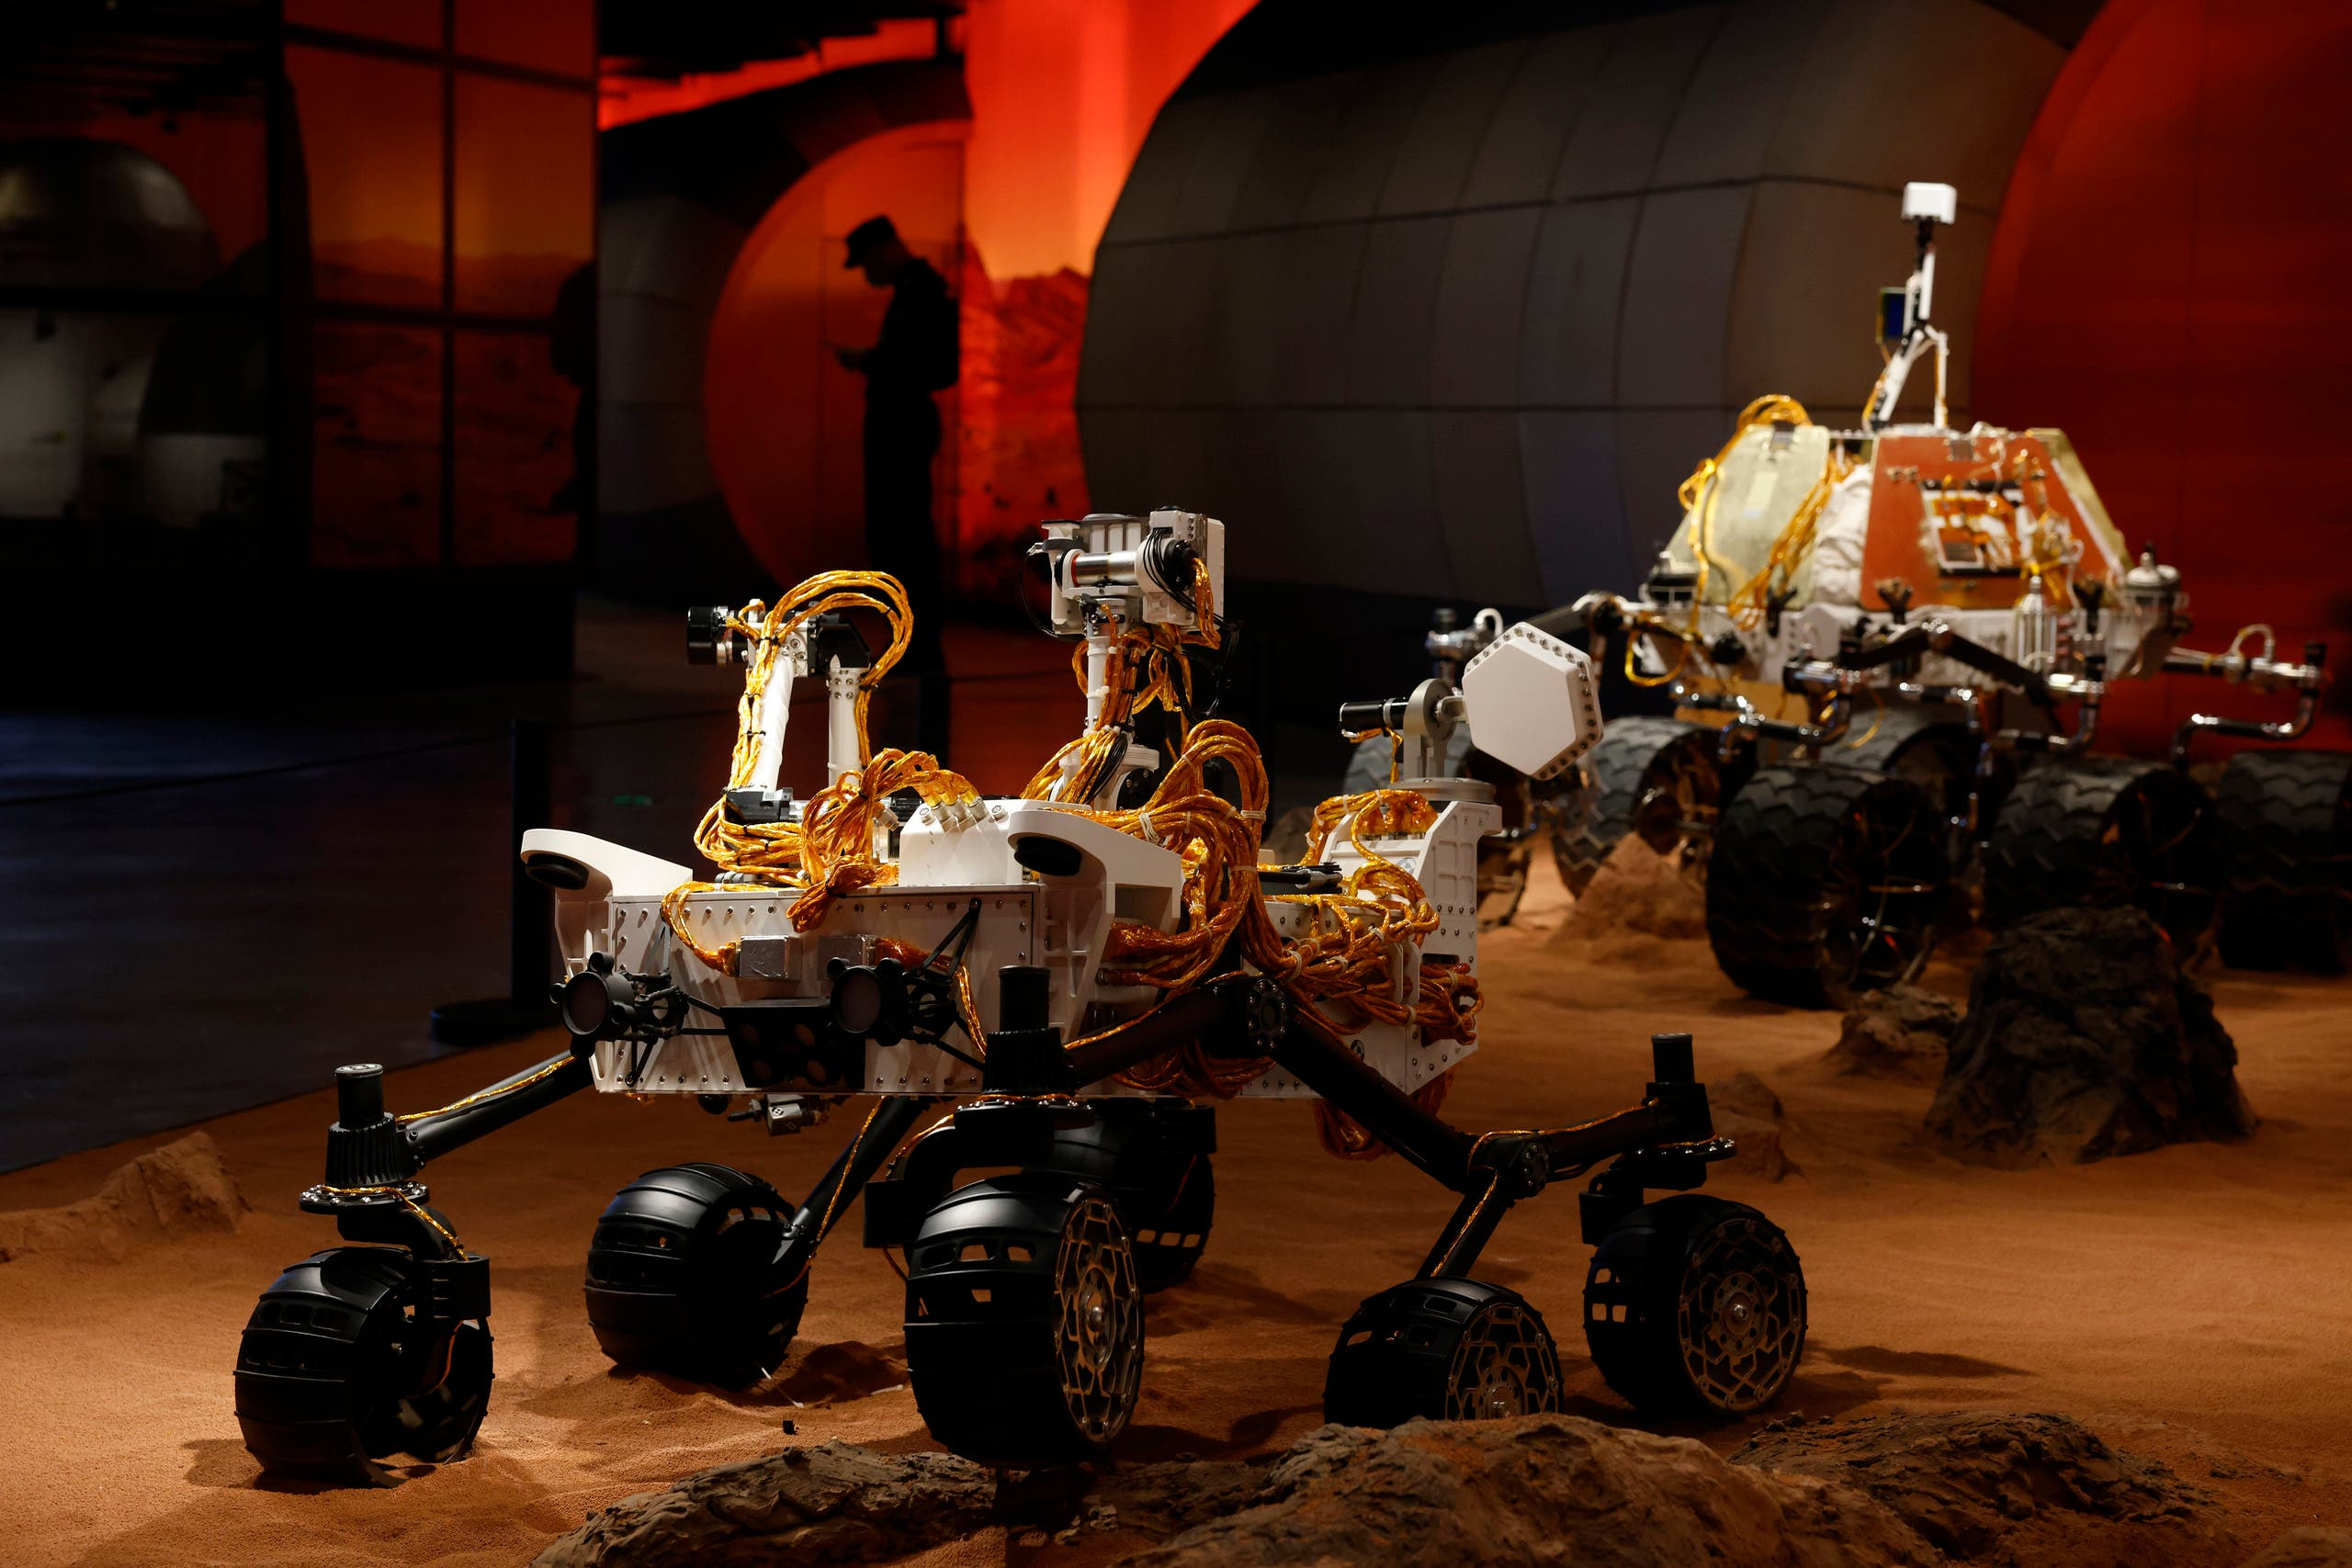 A security guard is silhouetted near a display depicting rovers on Mars during an exhibition in Beijing on Thursday, July 23, 2020. (AP Photo/Ng Han Guan)